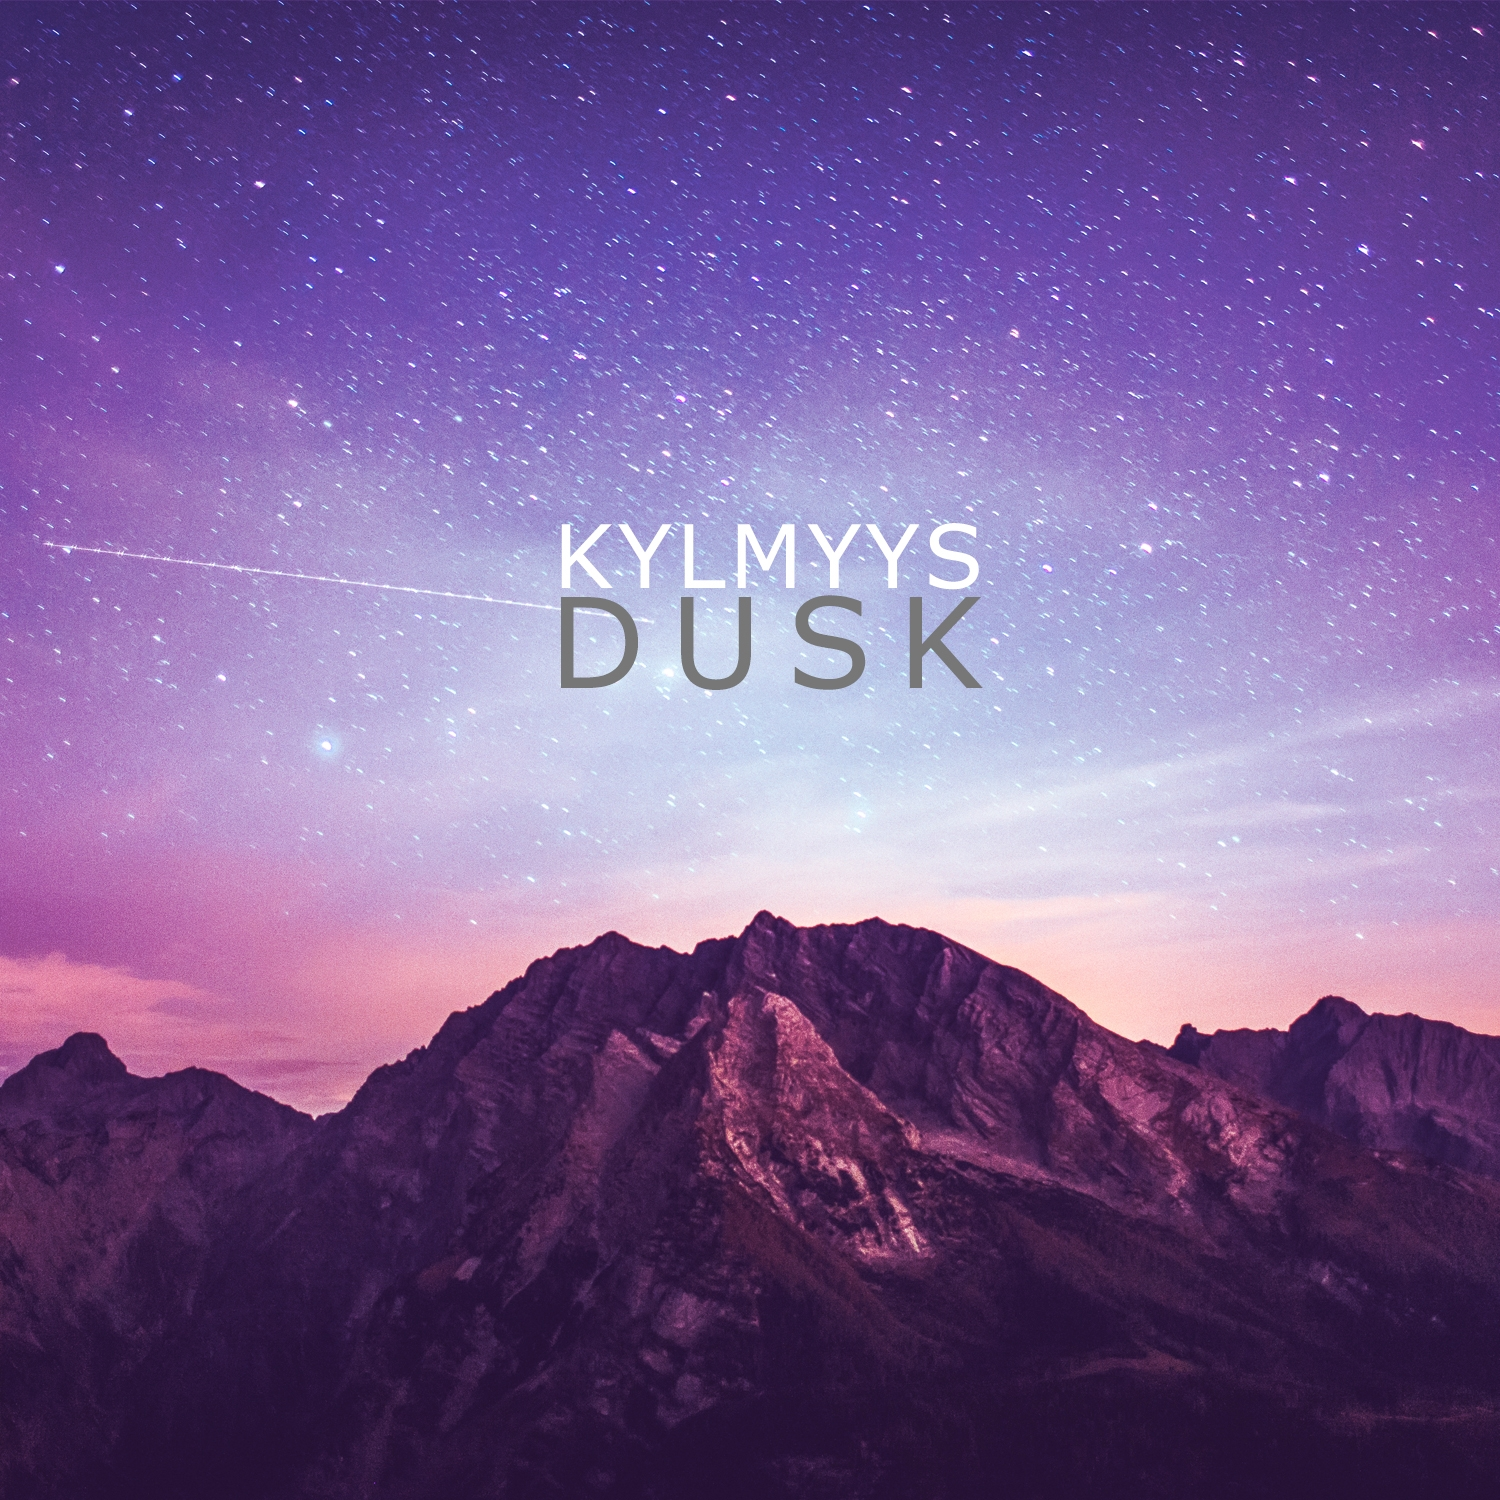 Latest Release: DUSK from Kylmyys